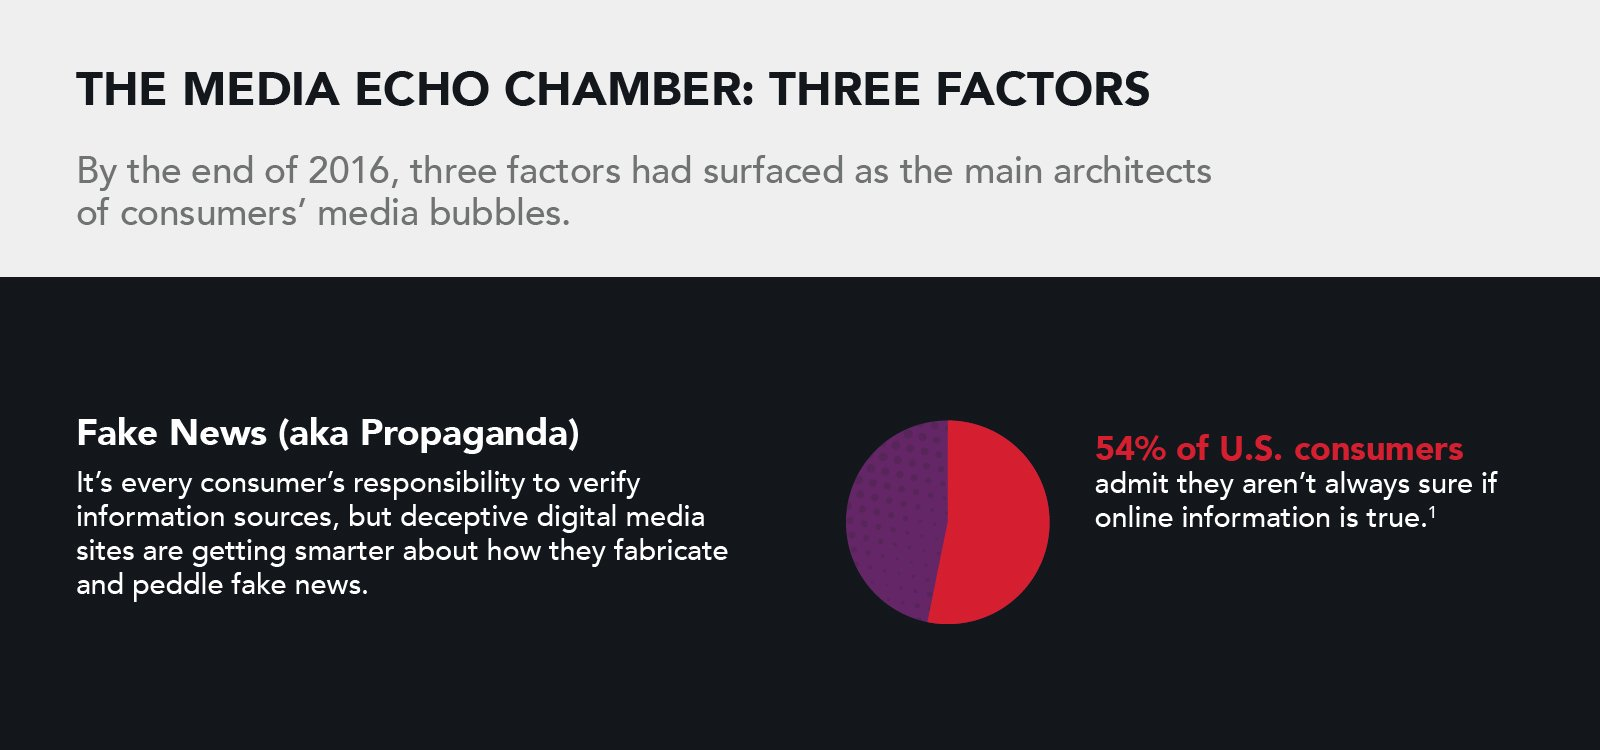 Publicis Experiences Digital Brands and Live Experiences - Media echo chamber's fake news a.k.a. propaganda